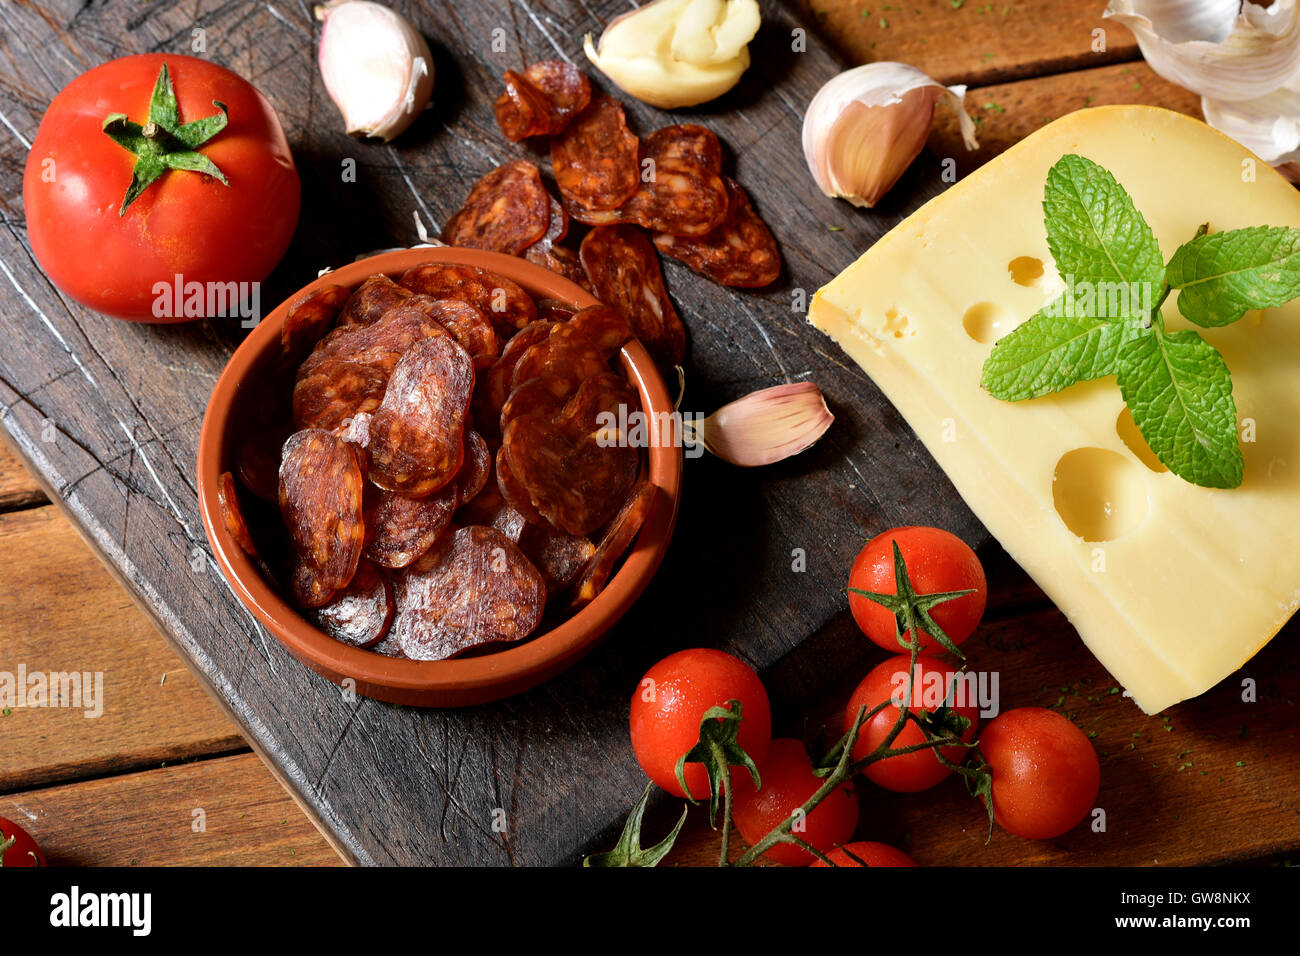 high-angle shot of an earthenware bowl with some slices of Spanish chorizo, a pork sausage typical of Spain, on Stock Photo